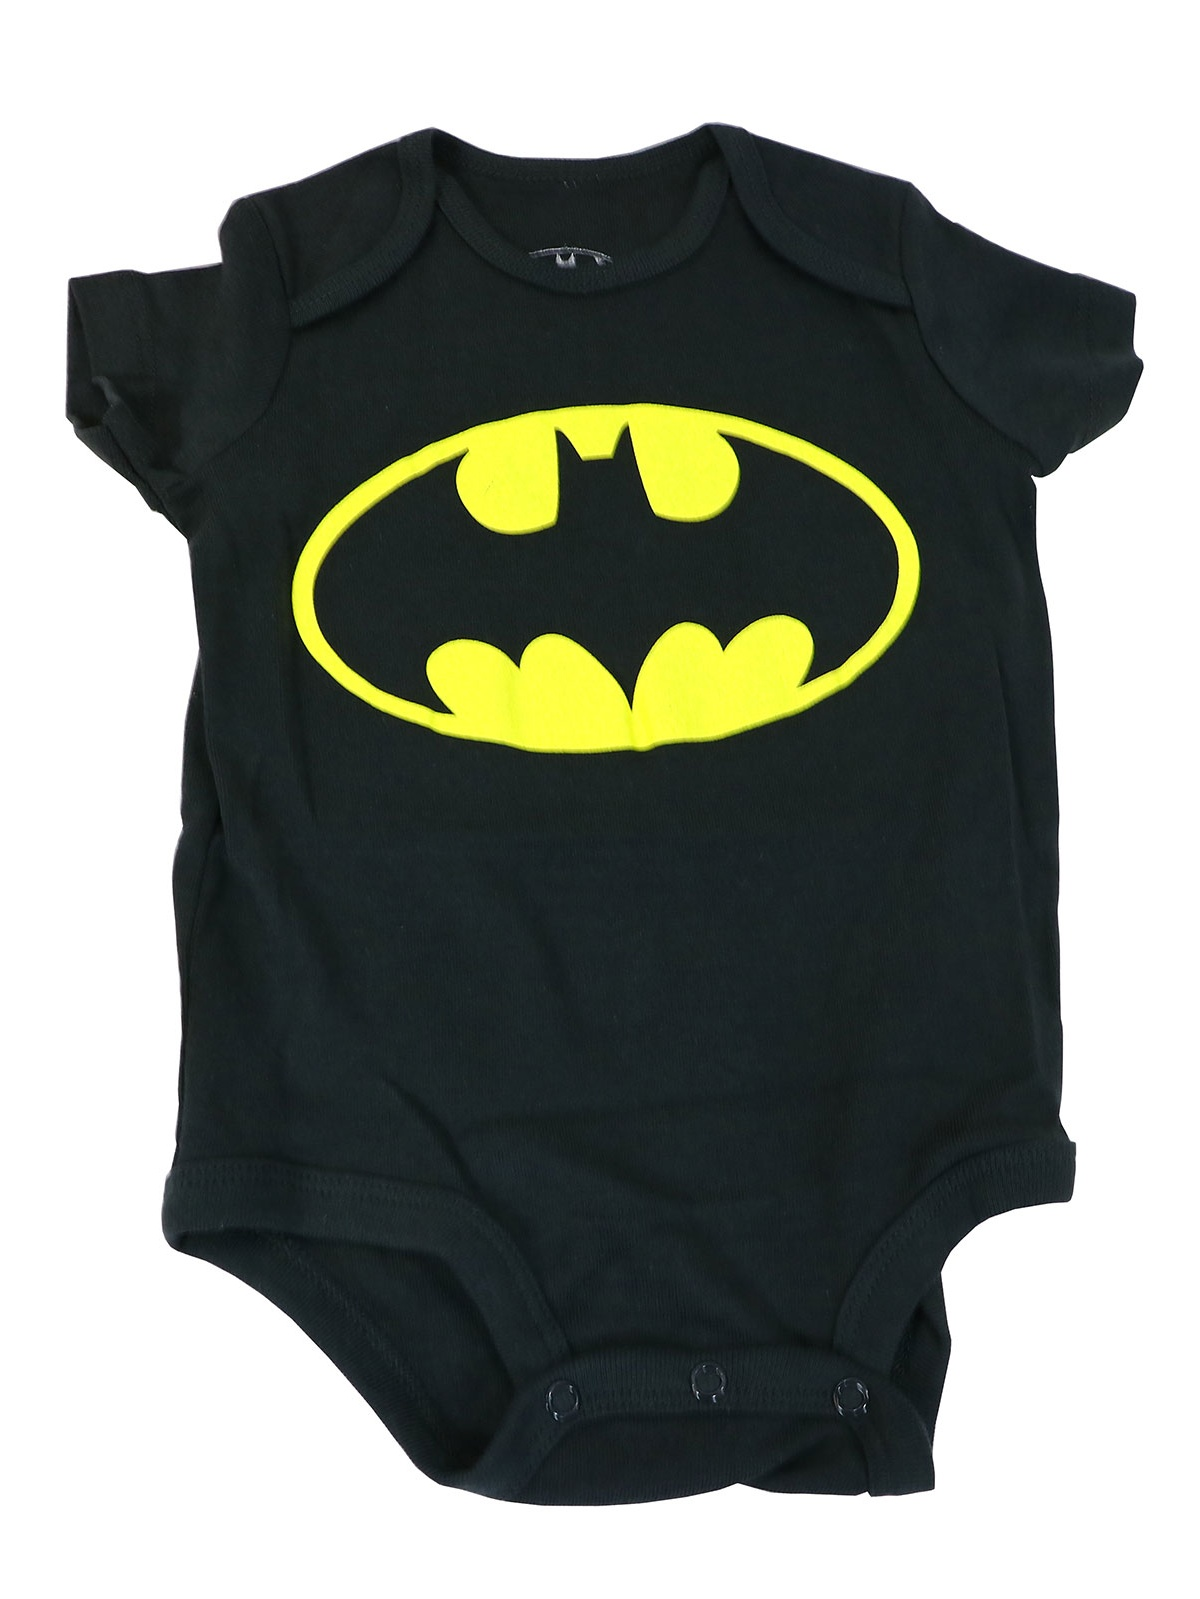 DC Comics Batman Logo Black Baby Creeper